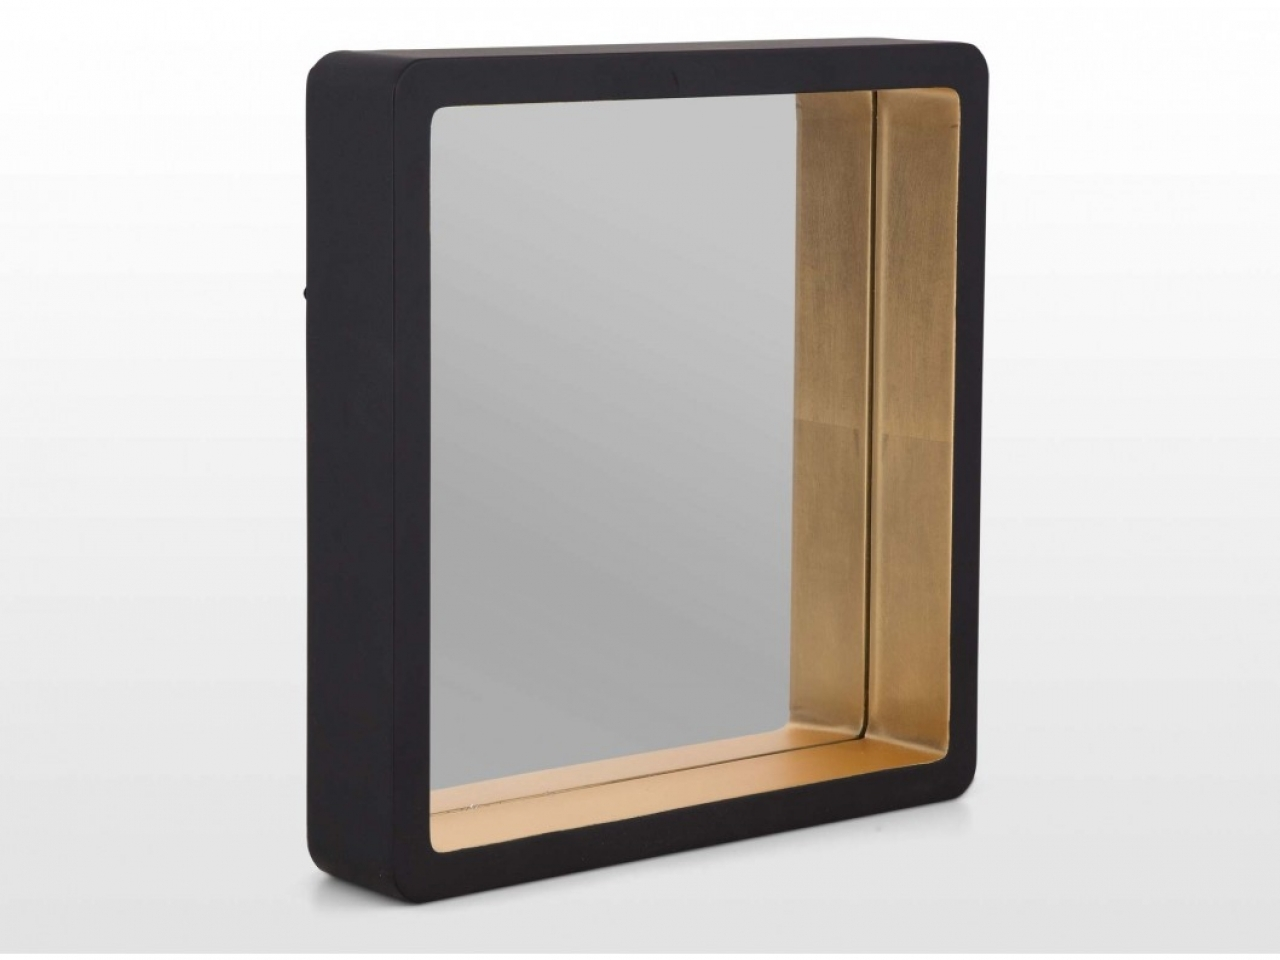 Long Wall Mirror Wall Mirrors Traditional Modern Contemporary Intended For Contempary Mirrors (Image 11 of 15)